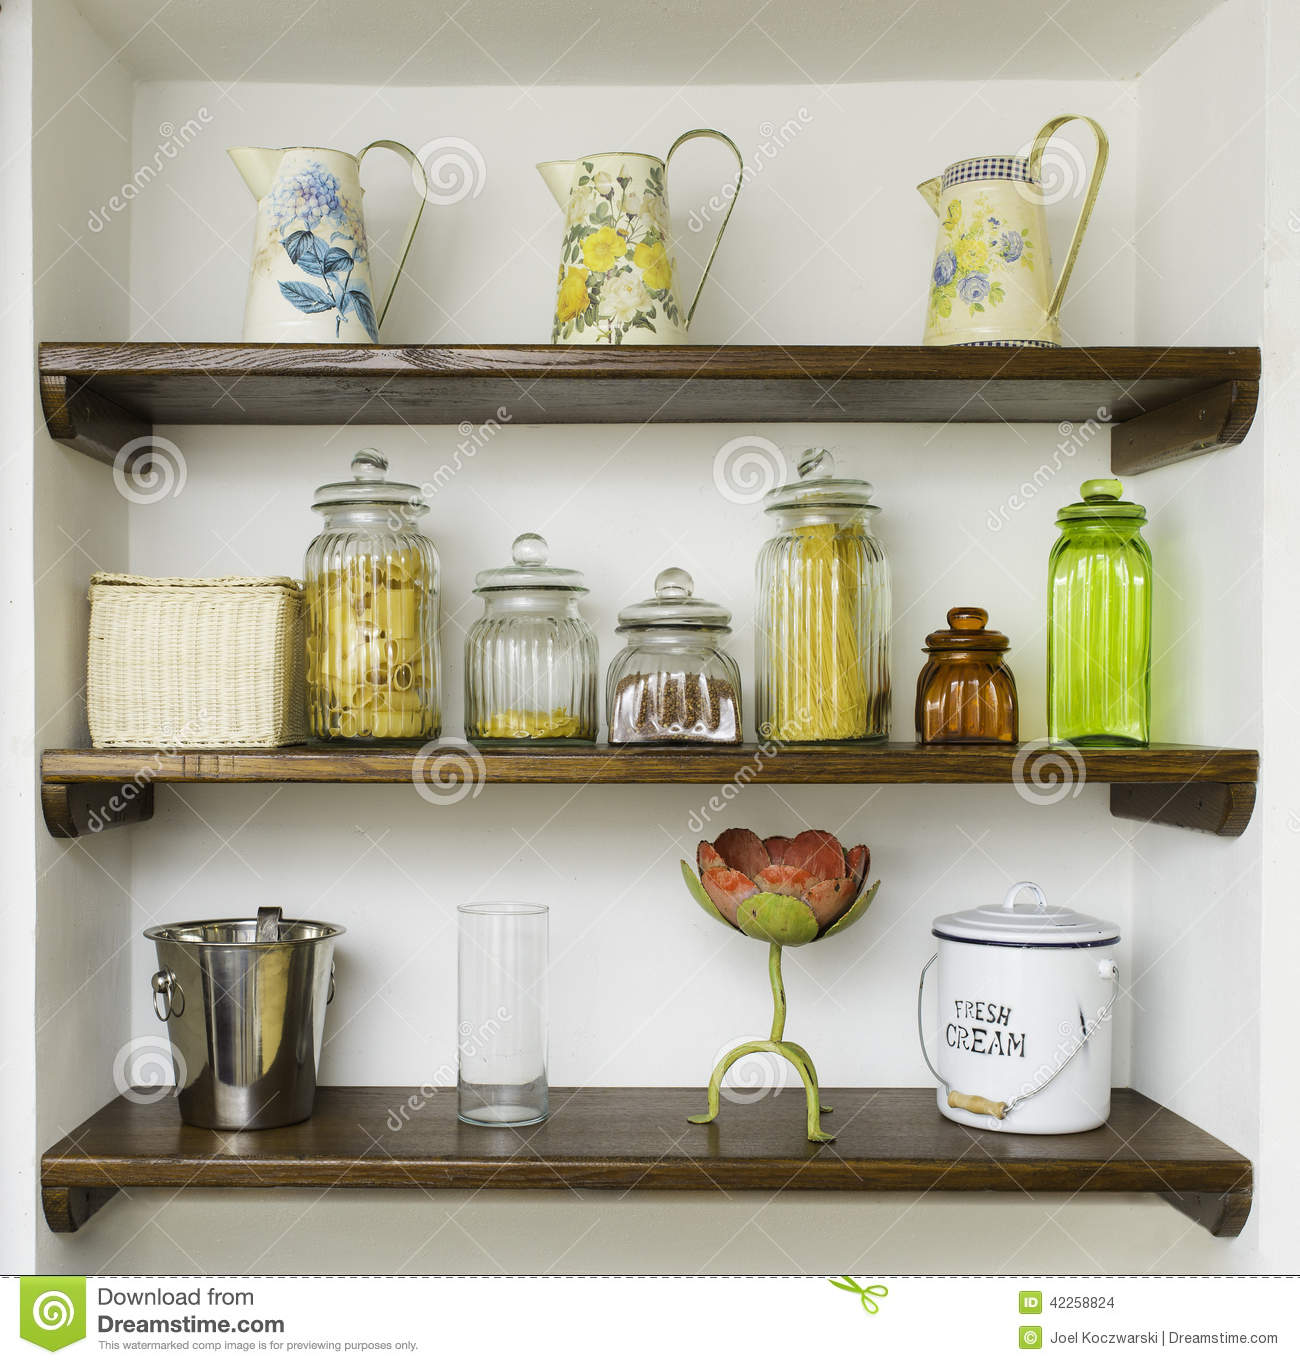 Vintage Kitchen Shelves With Jars, Jugs And Pots Stock